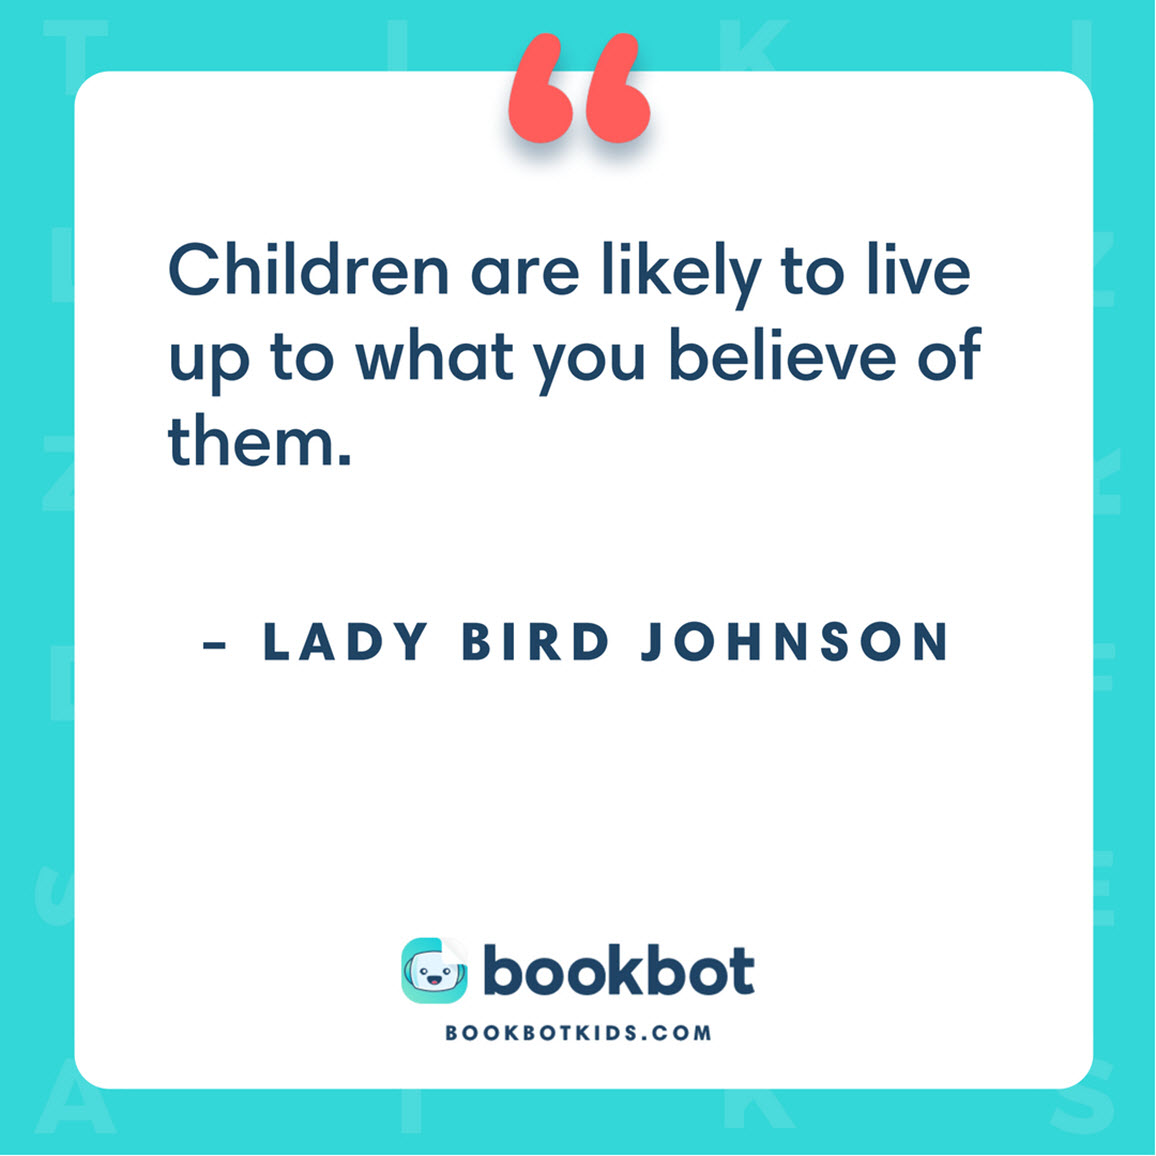 Children are likely to live up to what you believe of them. – Lady Bird Johnson